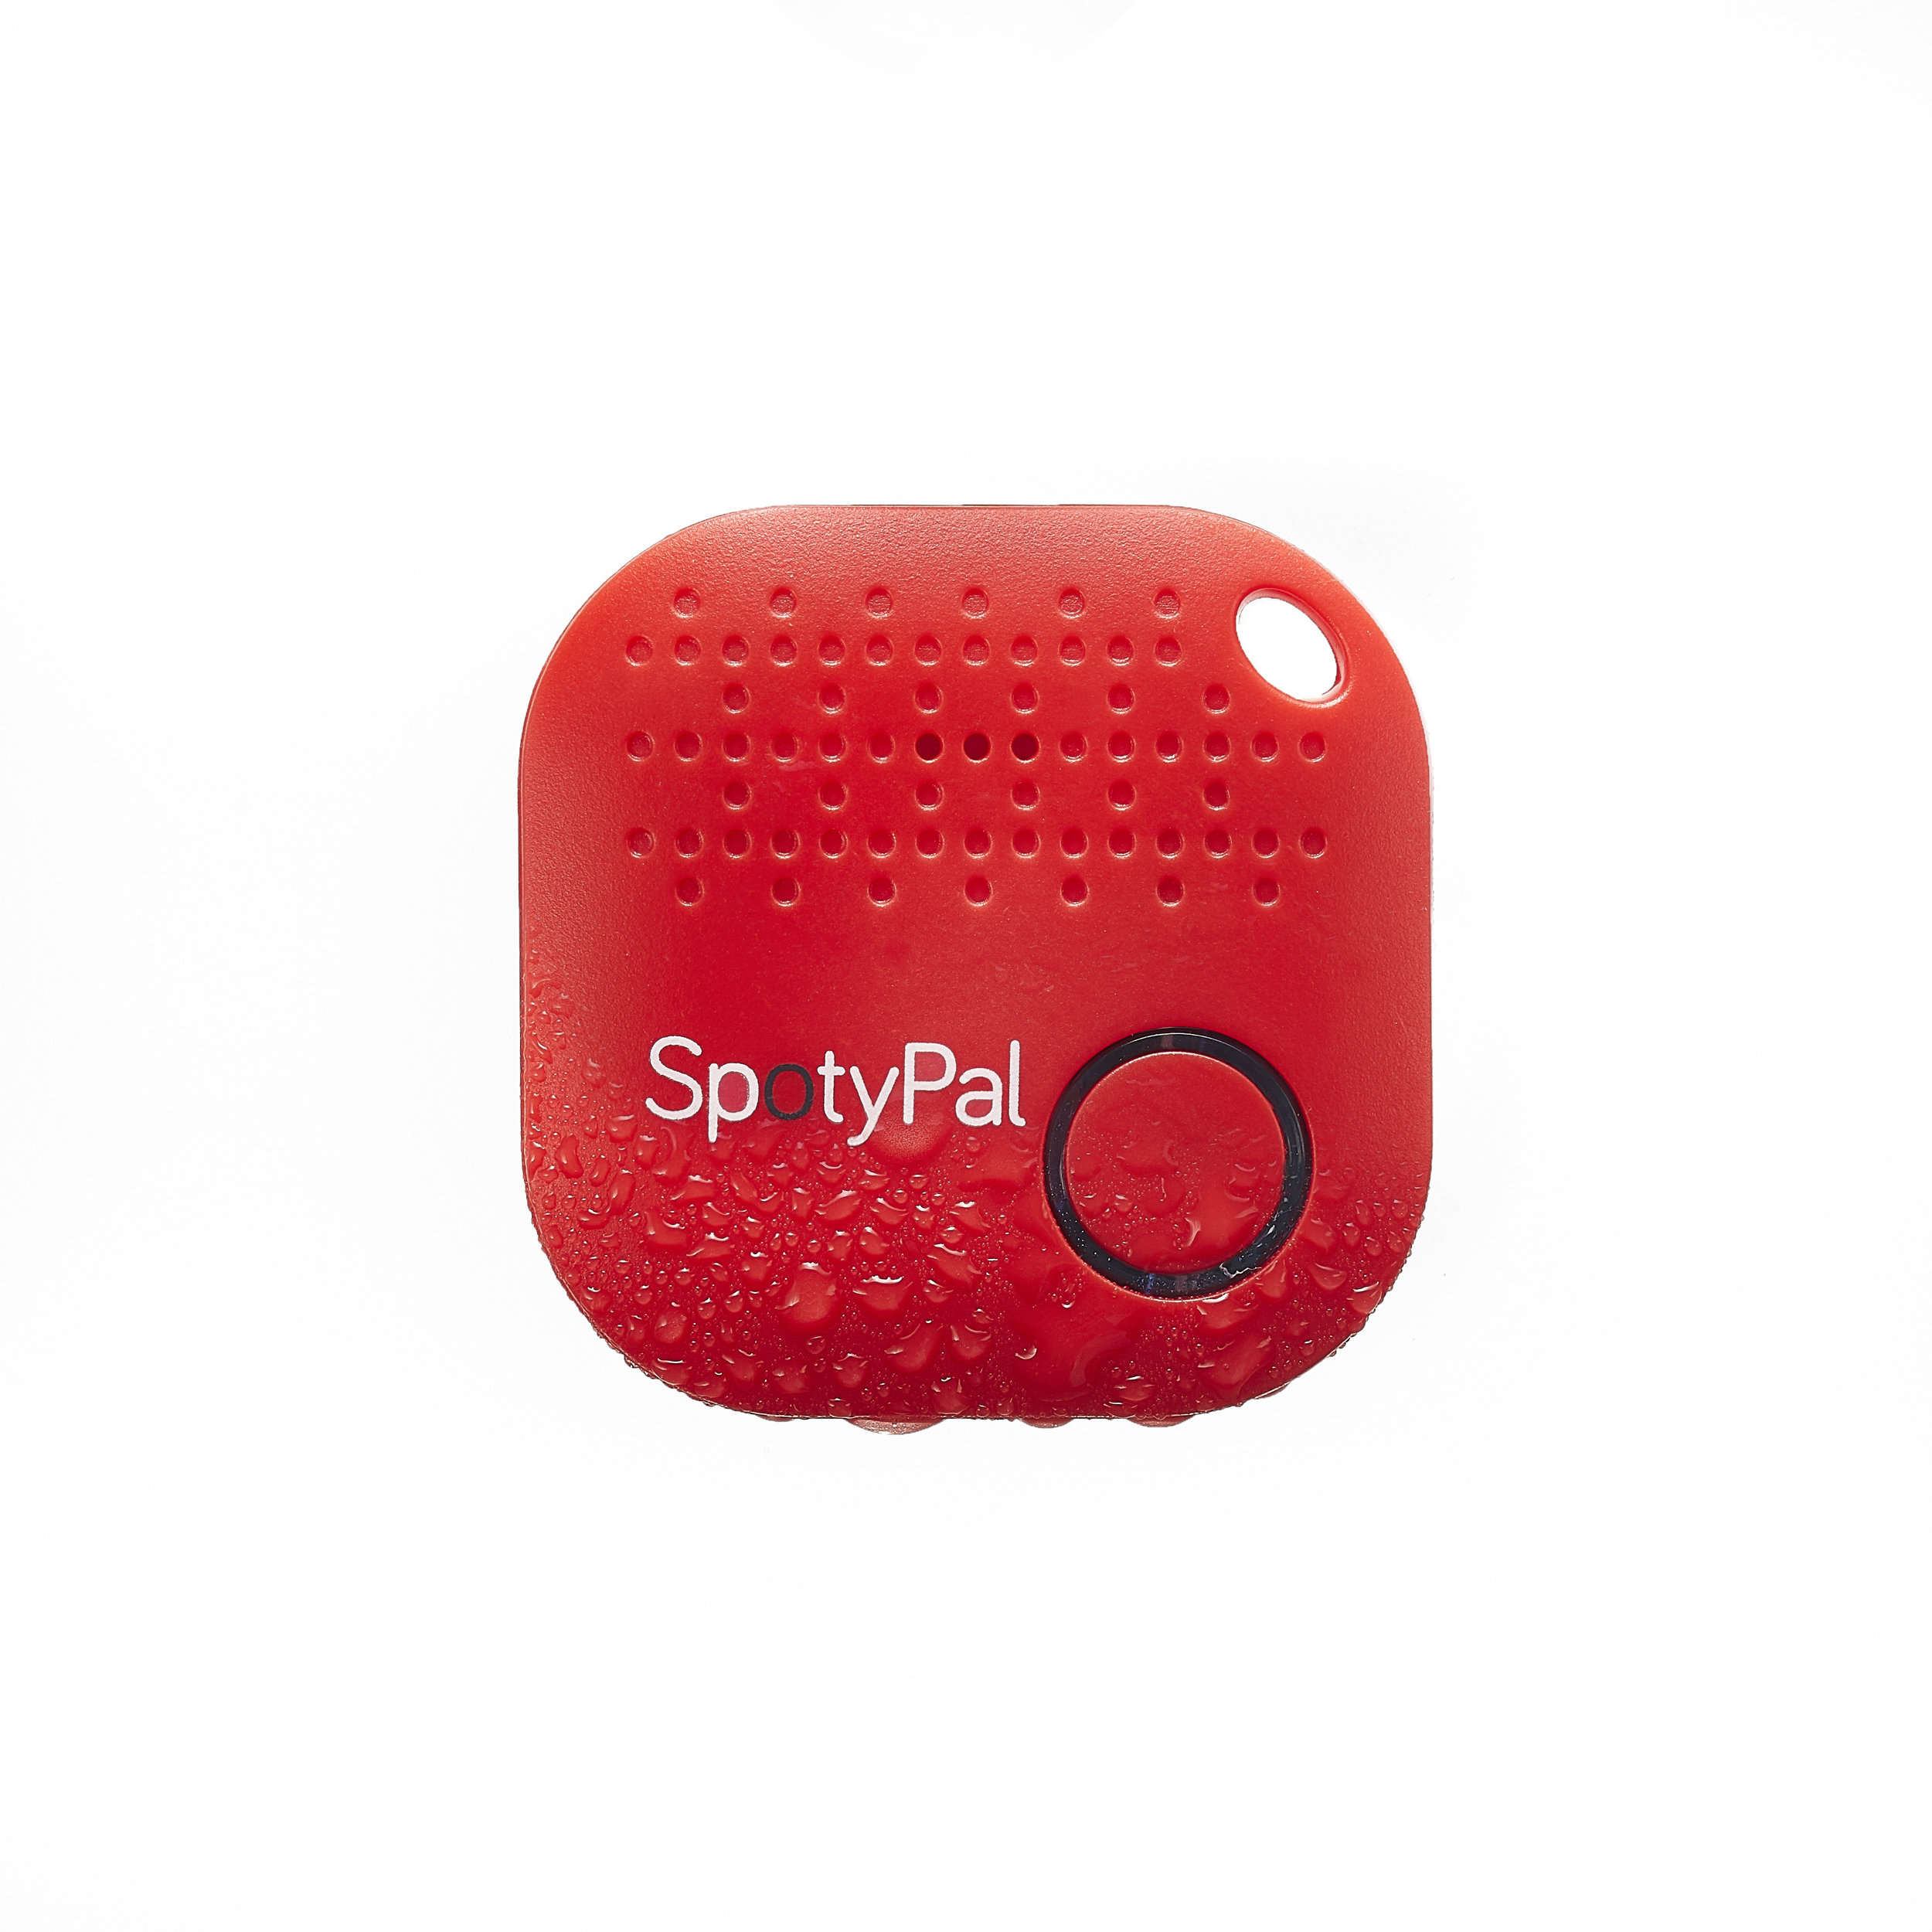 spotypal_red_front_splash.jpg